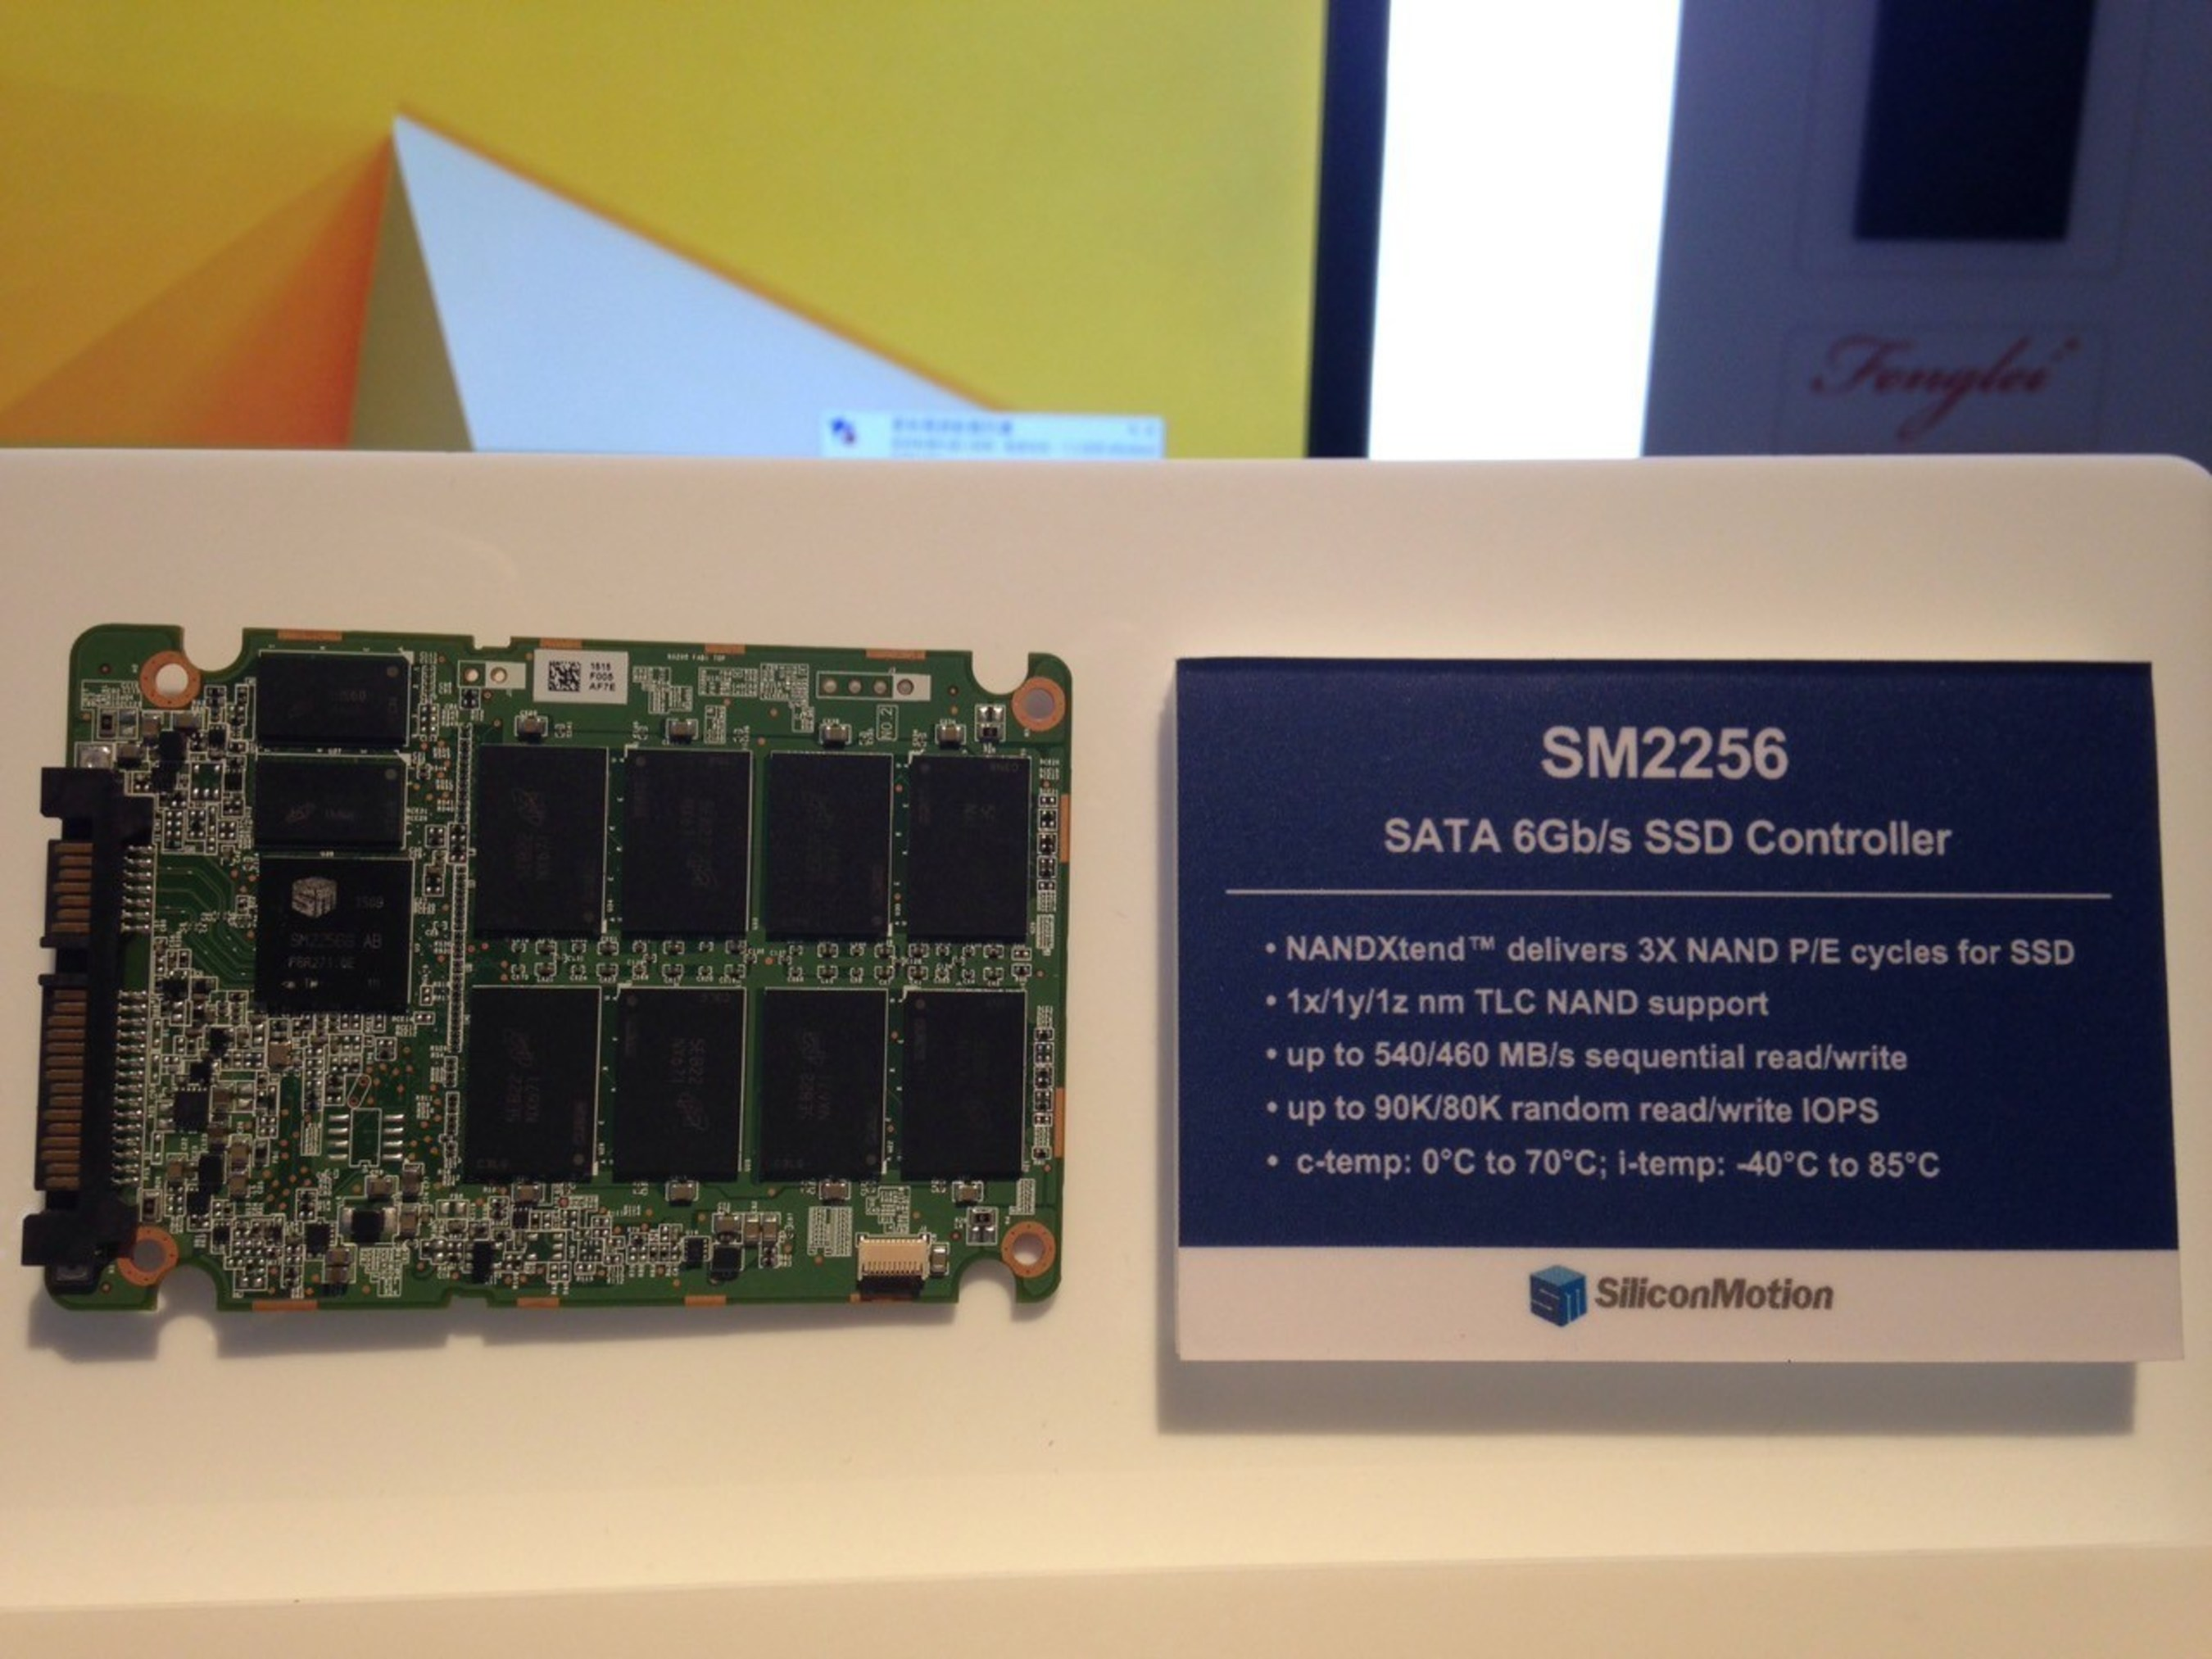 SM2256 supports Micron's new 16nm TLC NAND, enabling high performance and cost-optimized TLC SSDs